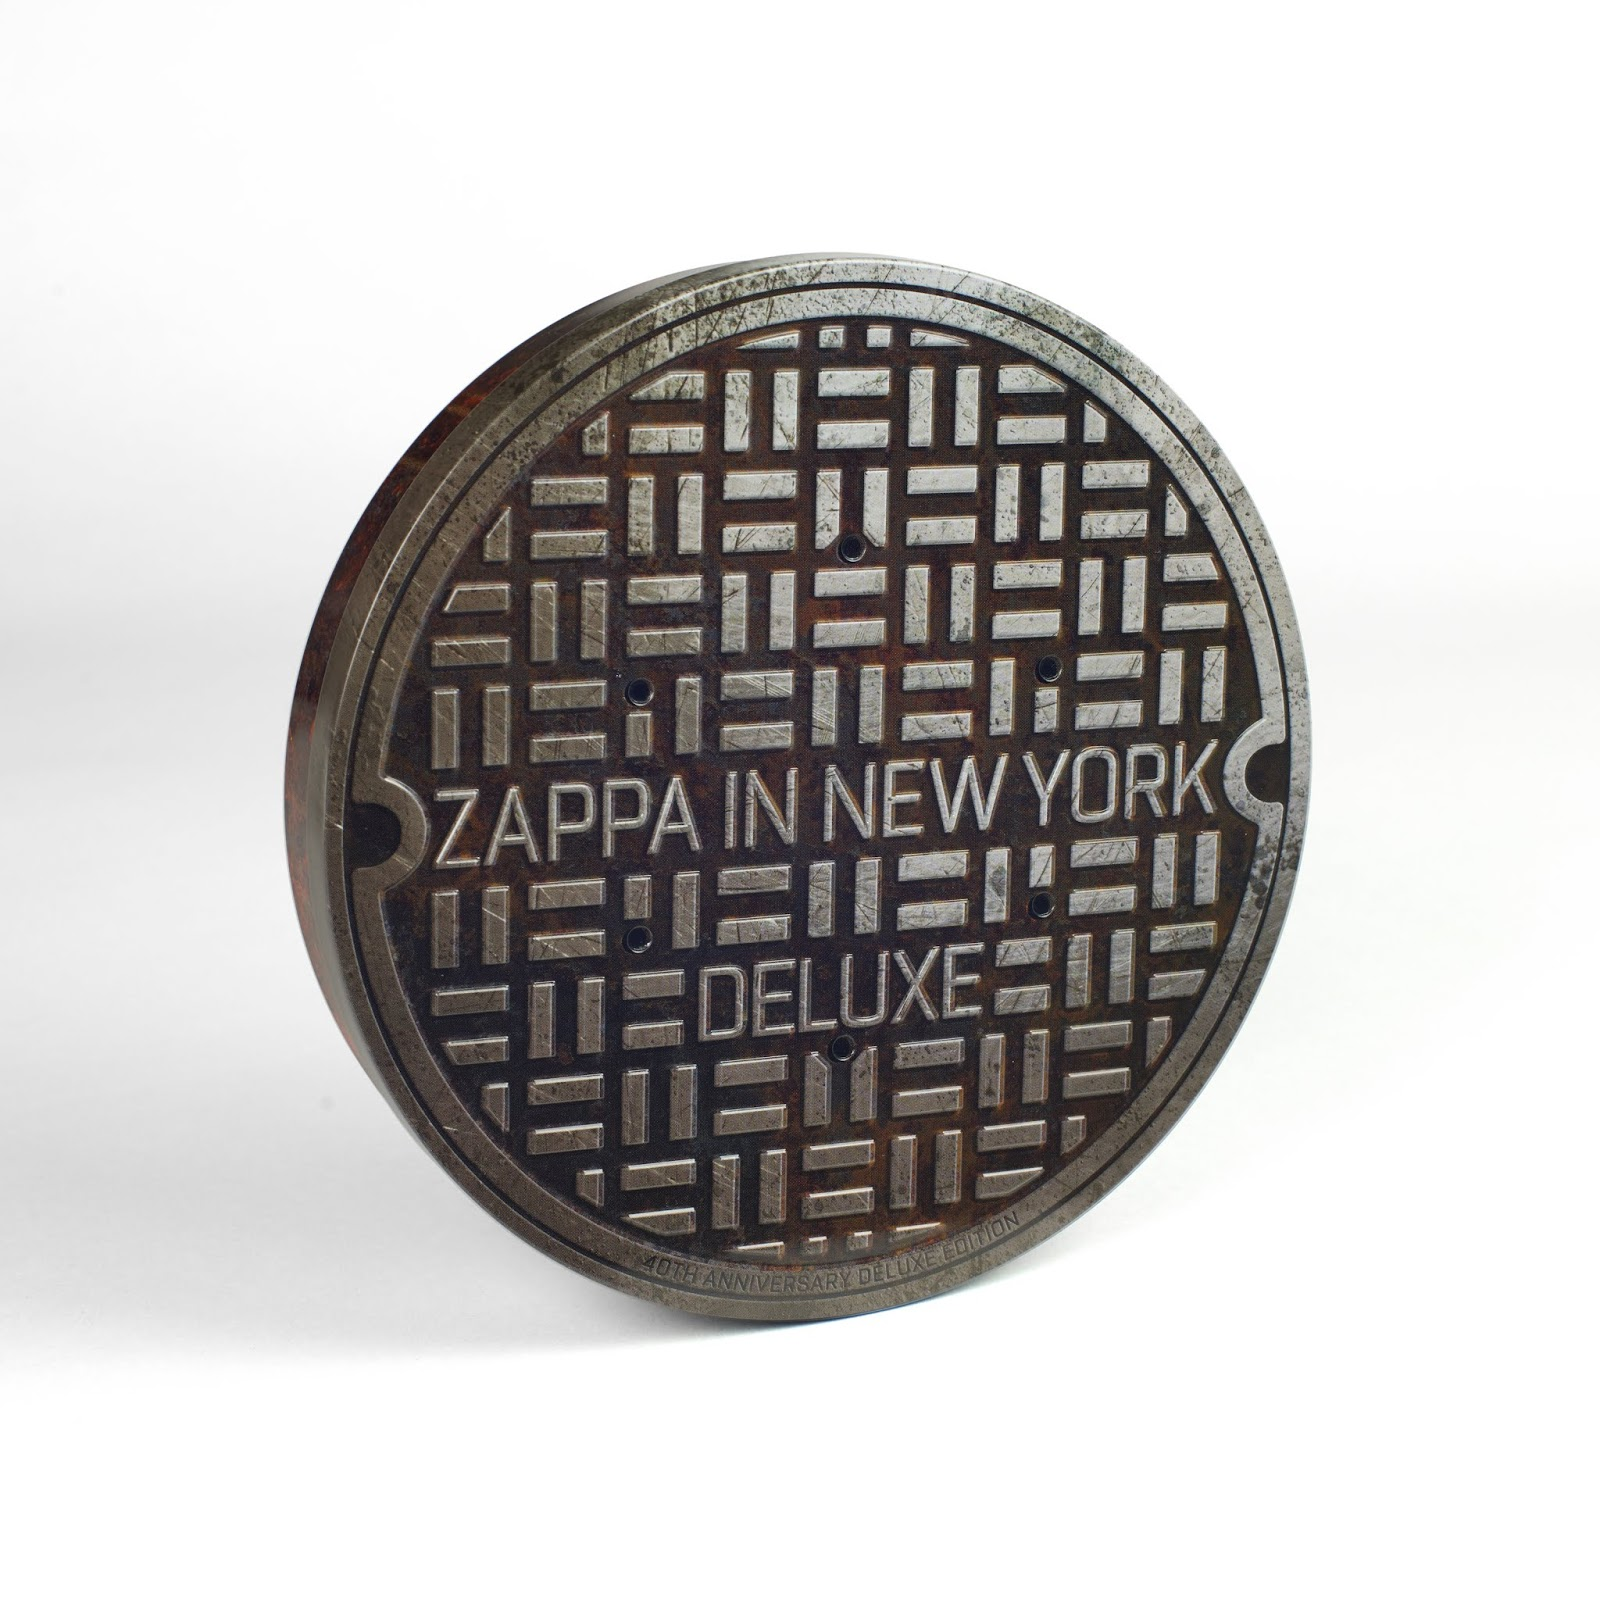 Zappa In New York 40th Anniversary Deluxe Edition On